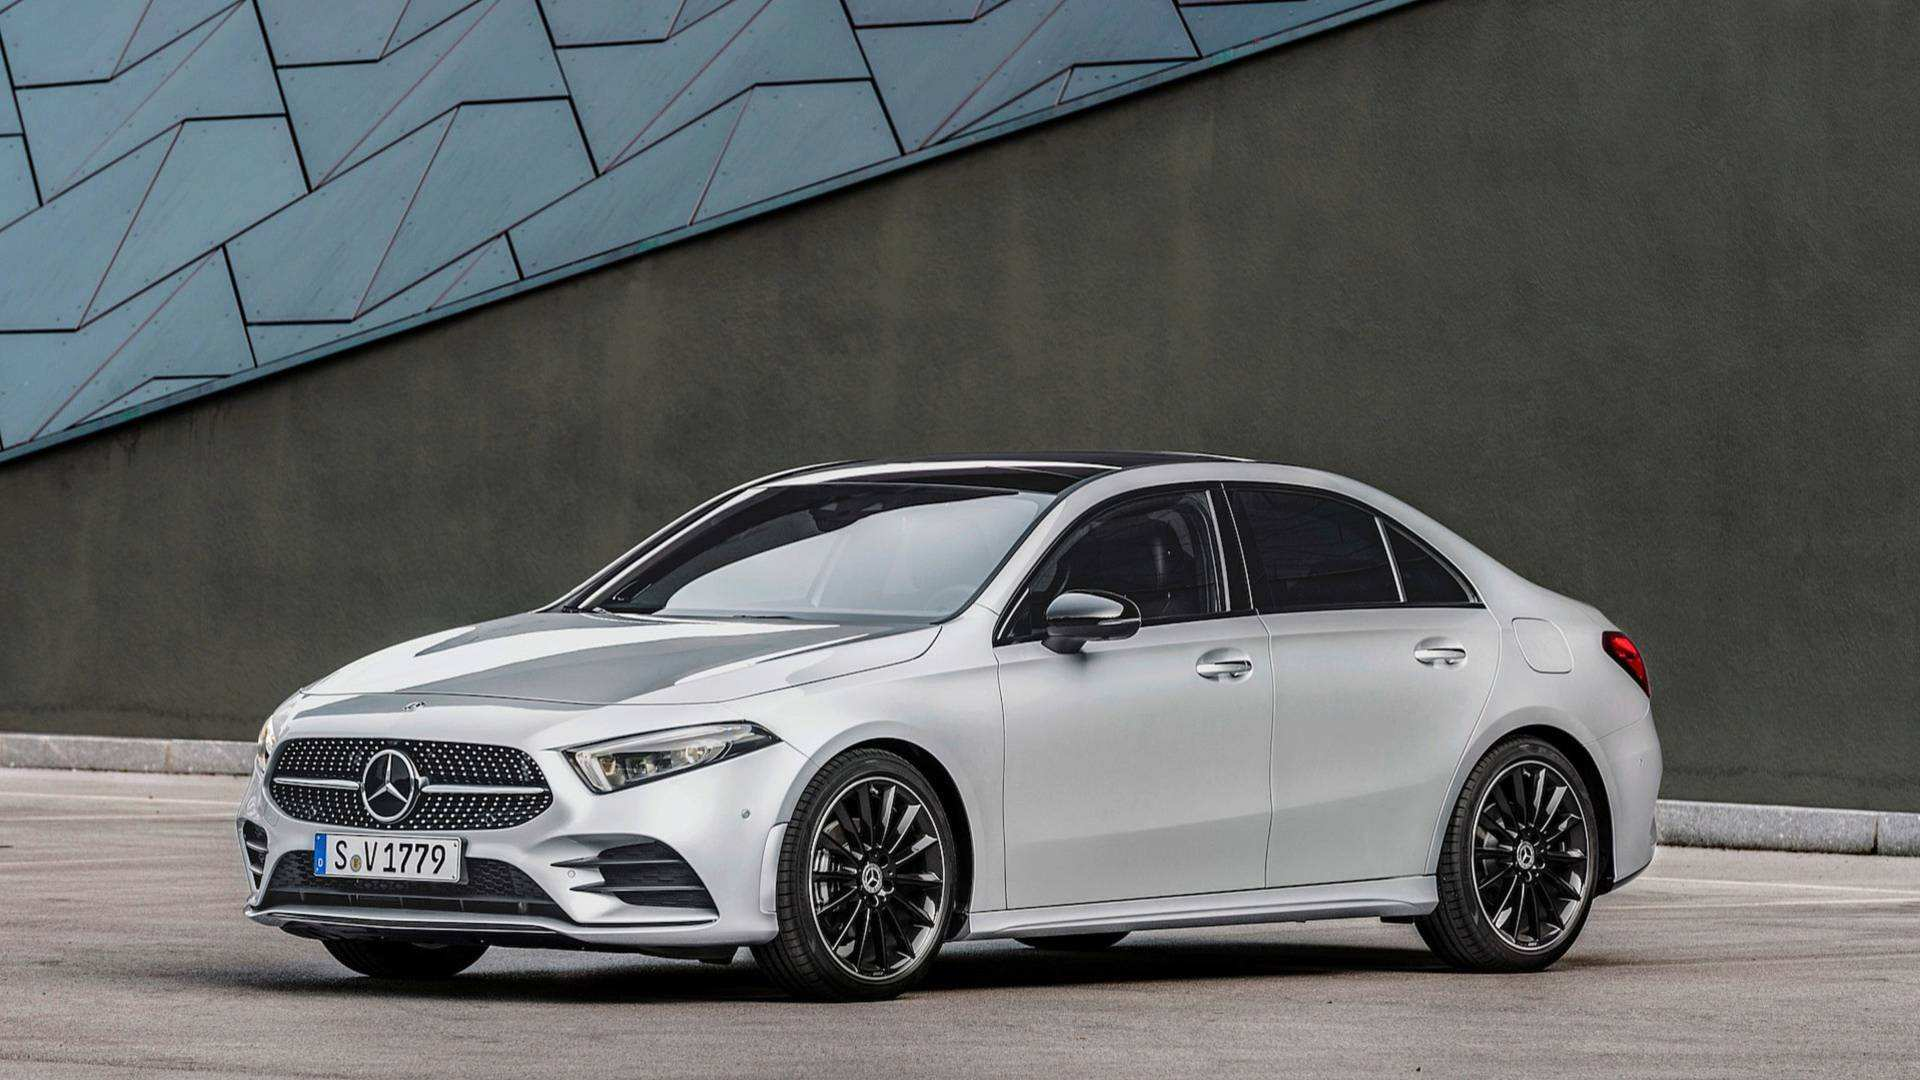 12 All New New 2019 Mercedes Delivery Date Price Exterior by New 2019 Mercedes Delivery Date Price